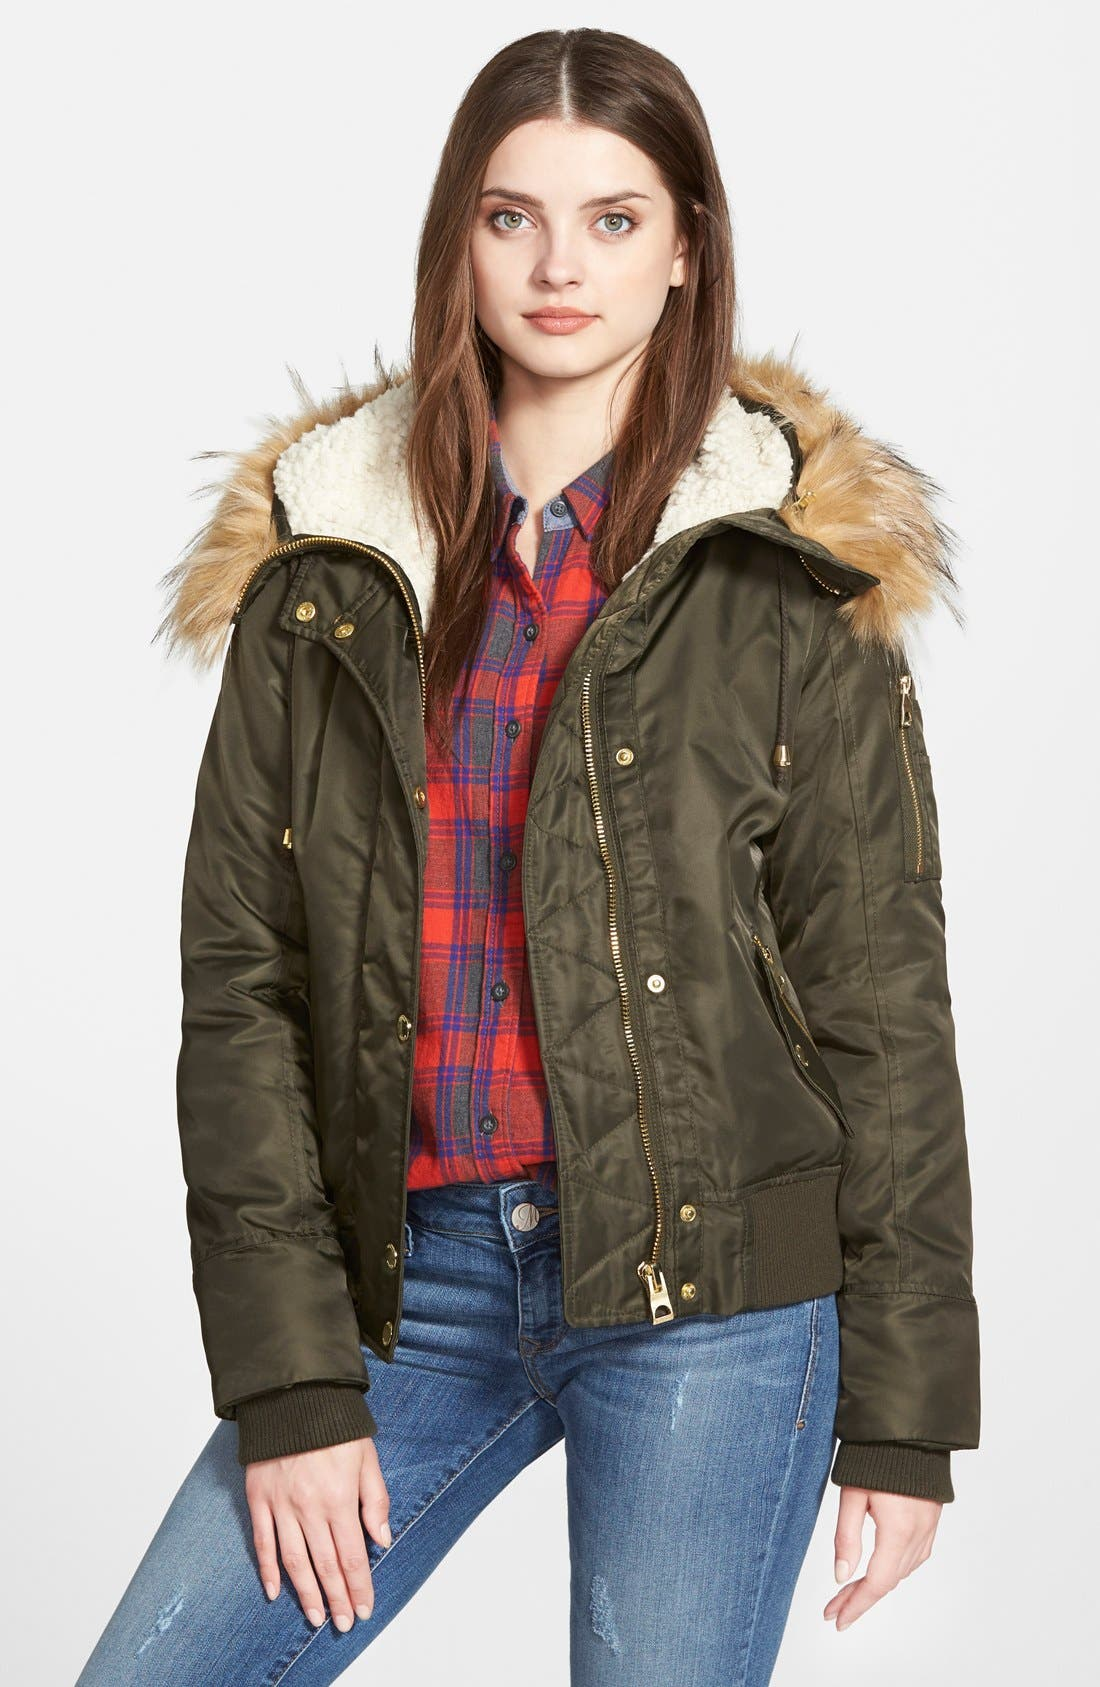 Alternate Image 1 Selected - GUESS Hooded Satin Bomber Jacket with Faux Fur Trim & Faux Shearling Lining